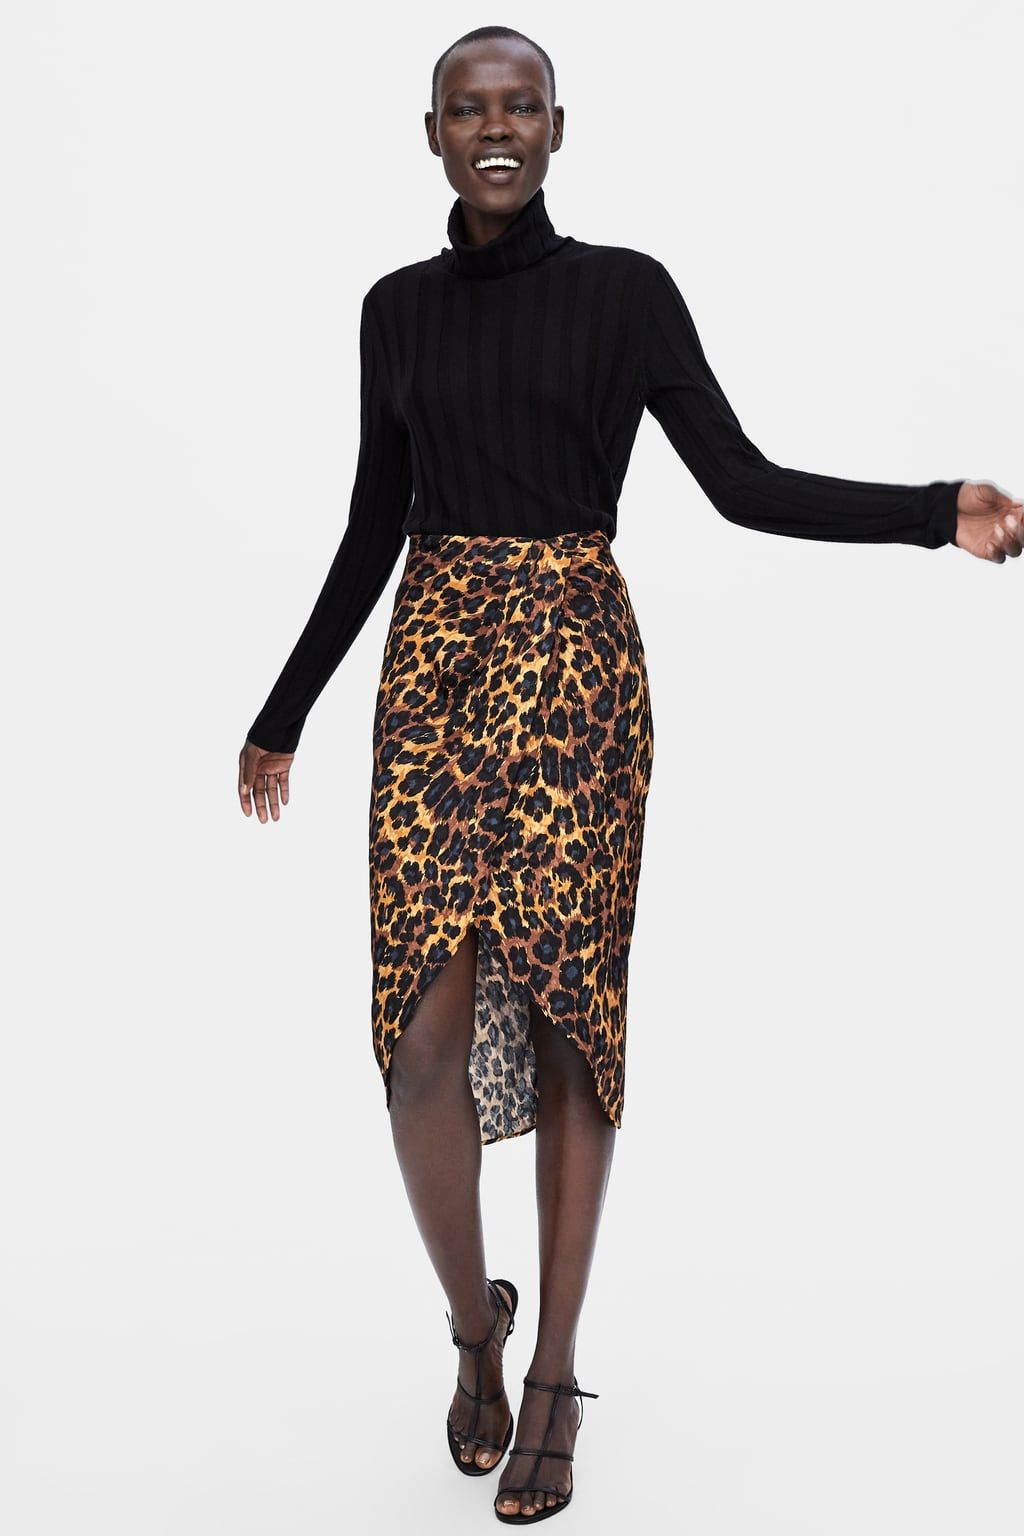 a6286c940b FALDA ESTAMPADO ANIMAL in 2019 | Fashion - Zara SS/FW15 | Animal ...